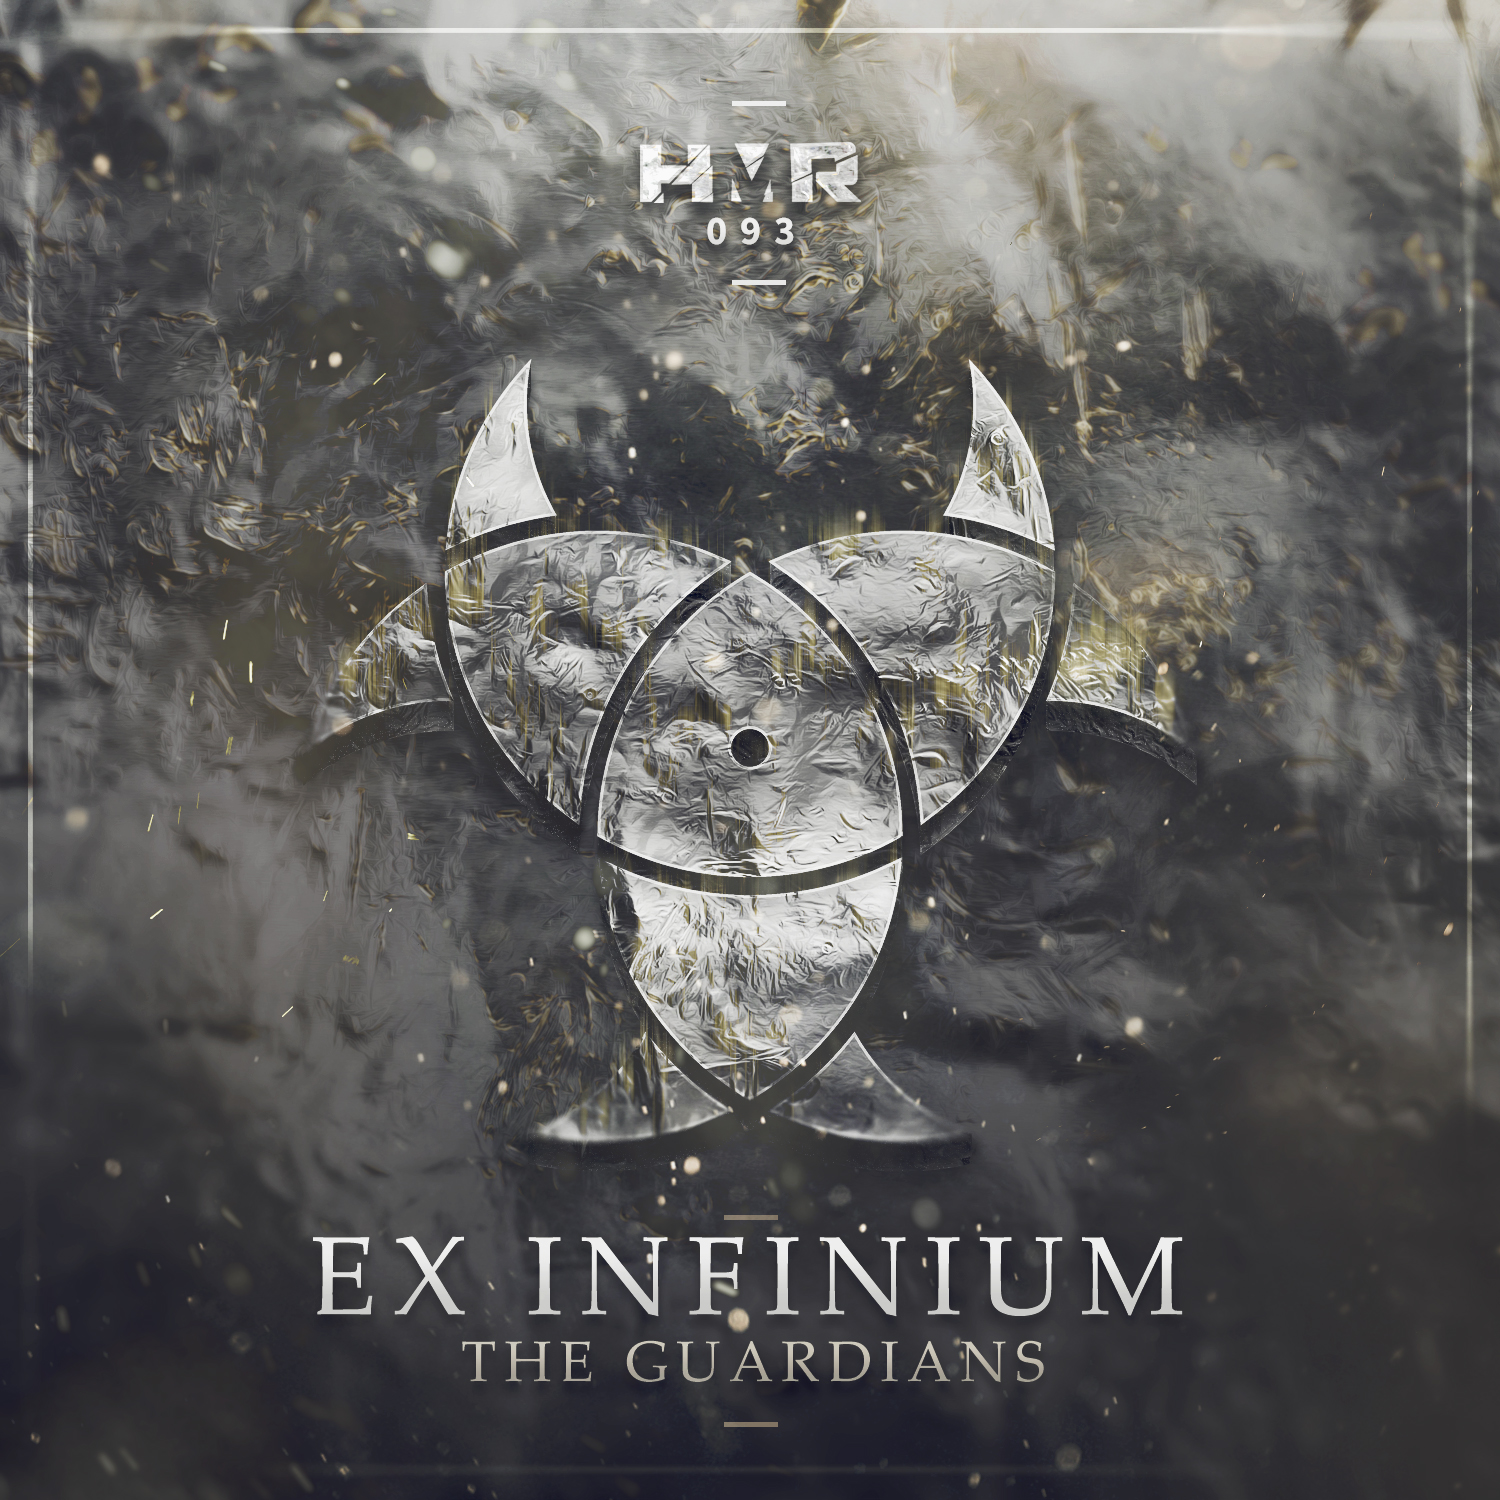 The Guardians by Ex Infinium